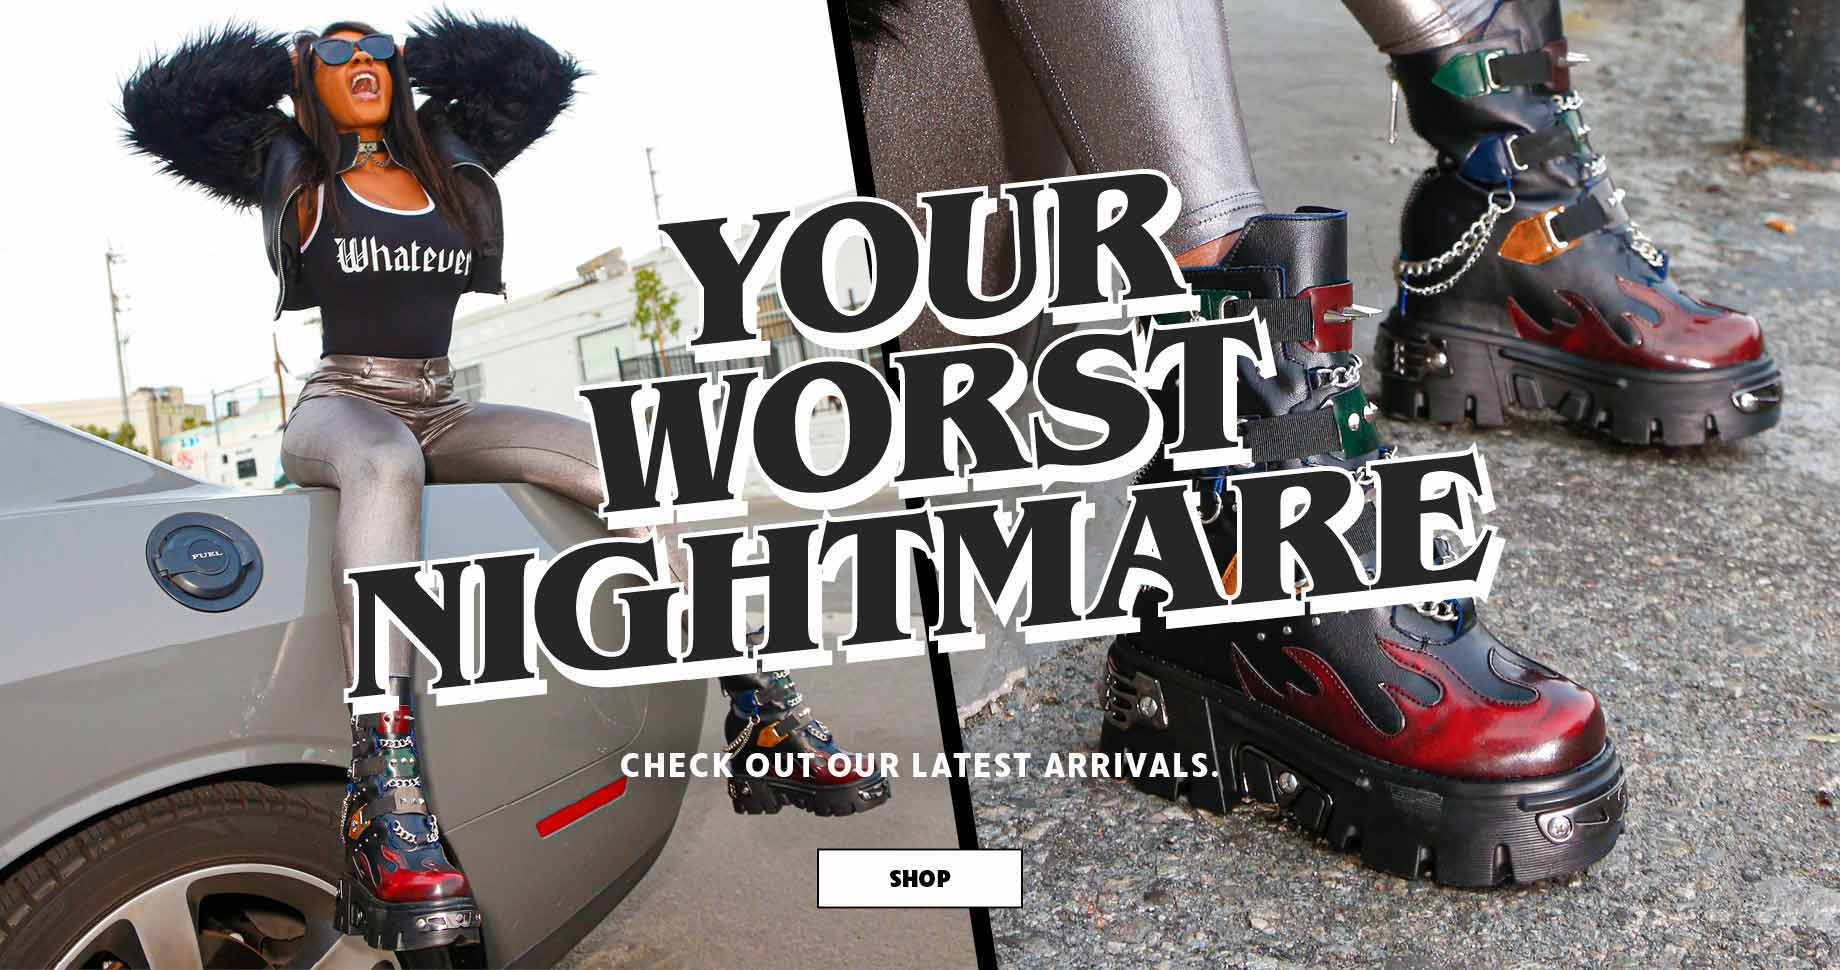 Your worst nightmare. Check out our latest arrivals | Shop